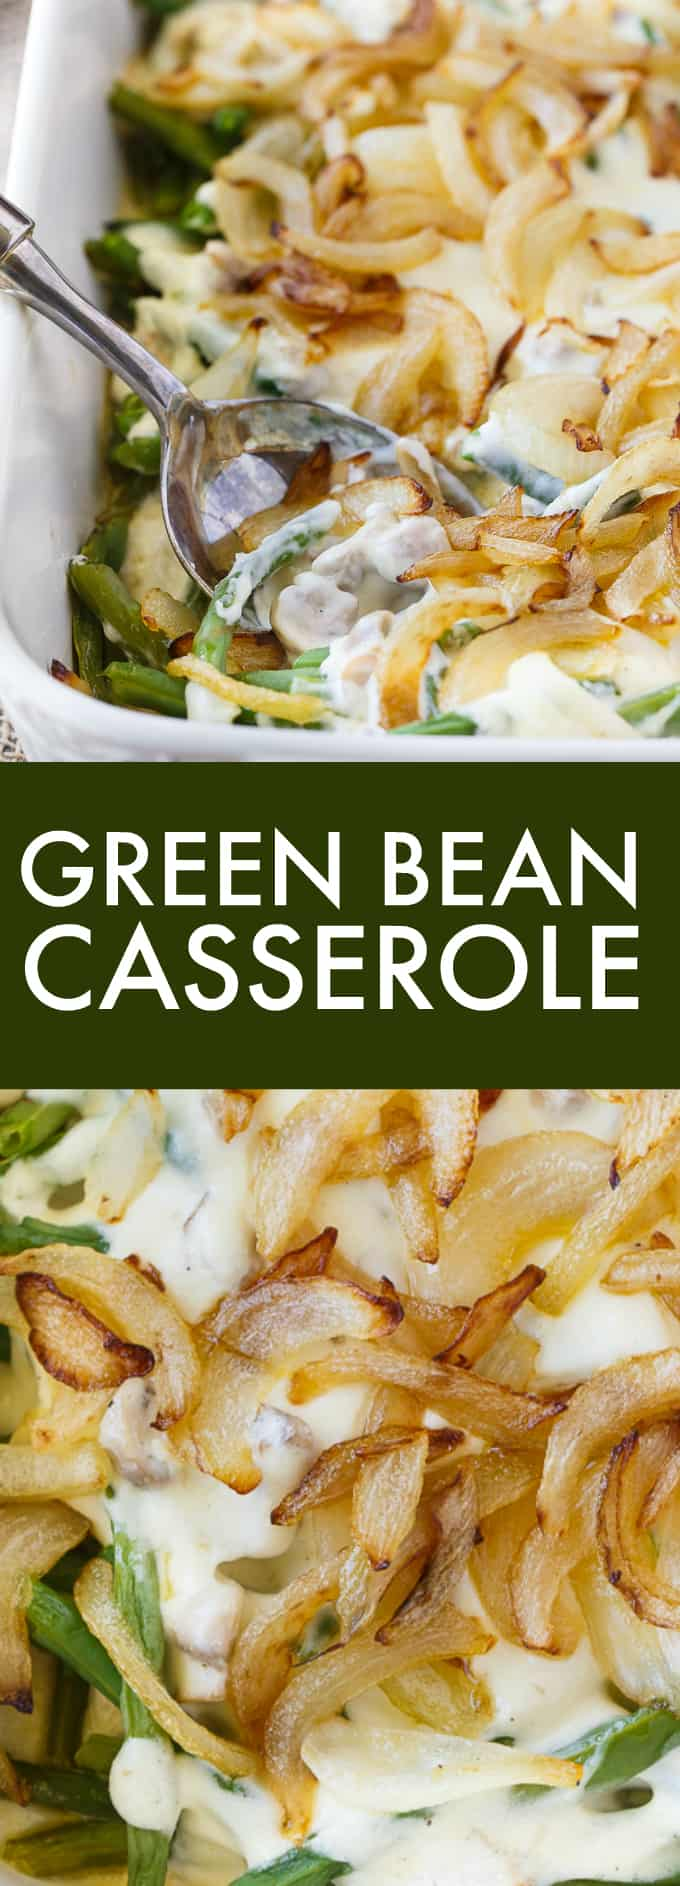 Green Bean Casserole - Comfort food supreme! This homemade side dish is creamy and delicious. No canned soup!